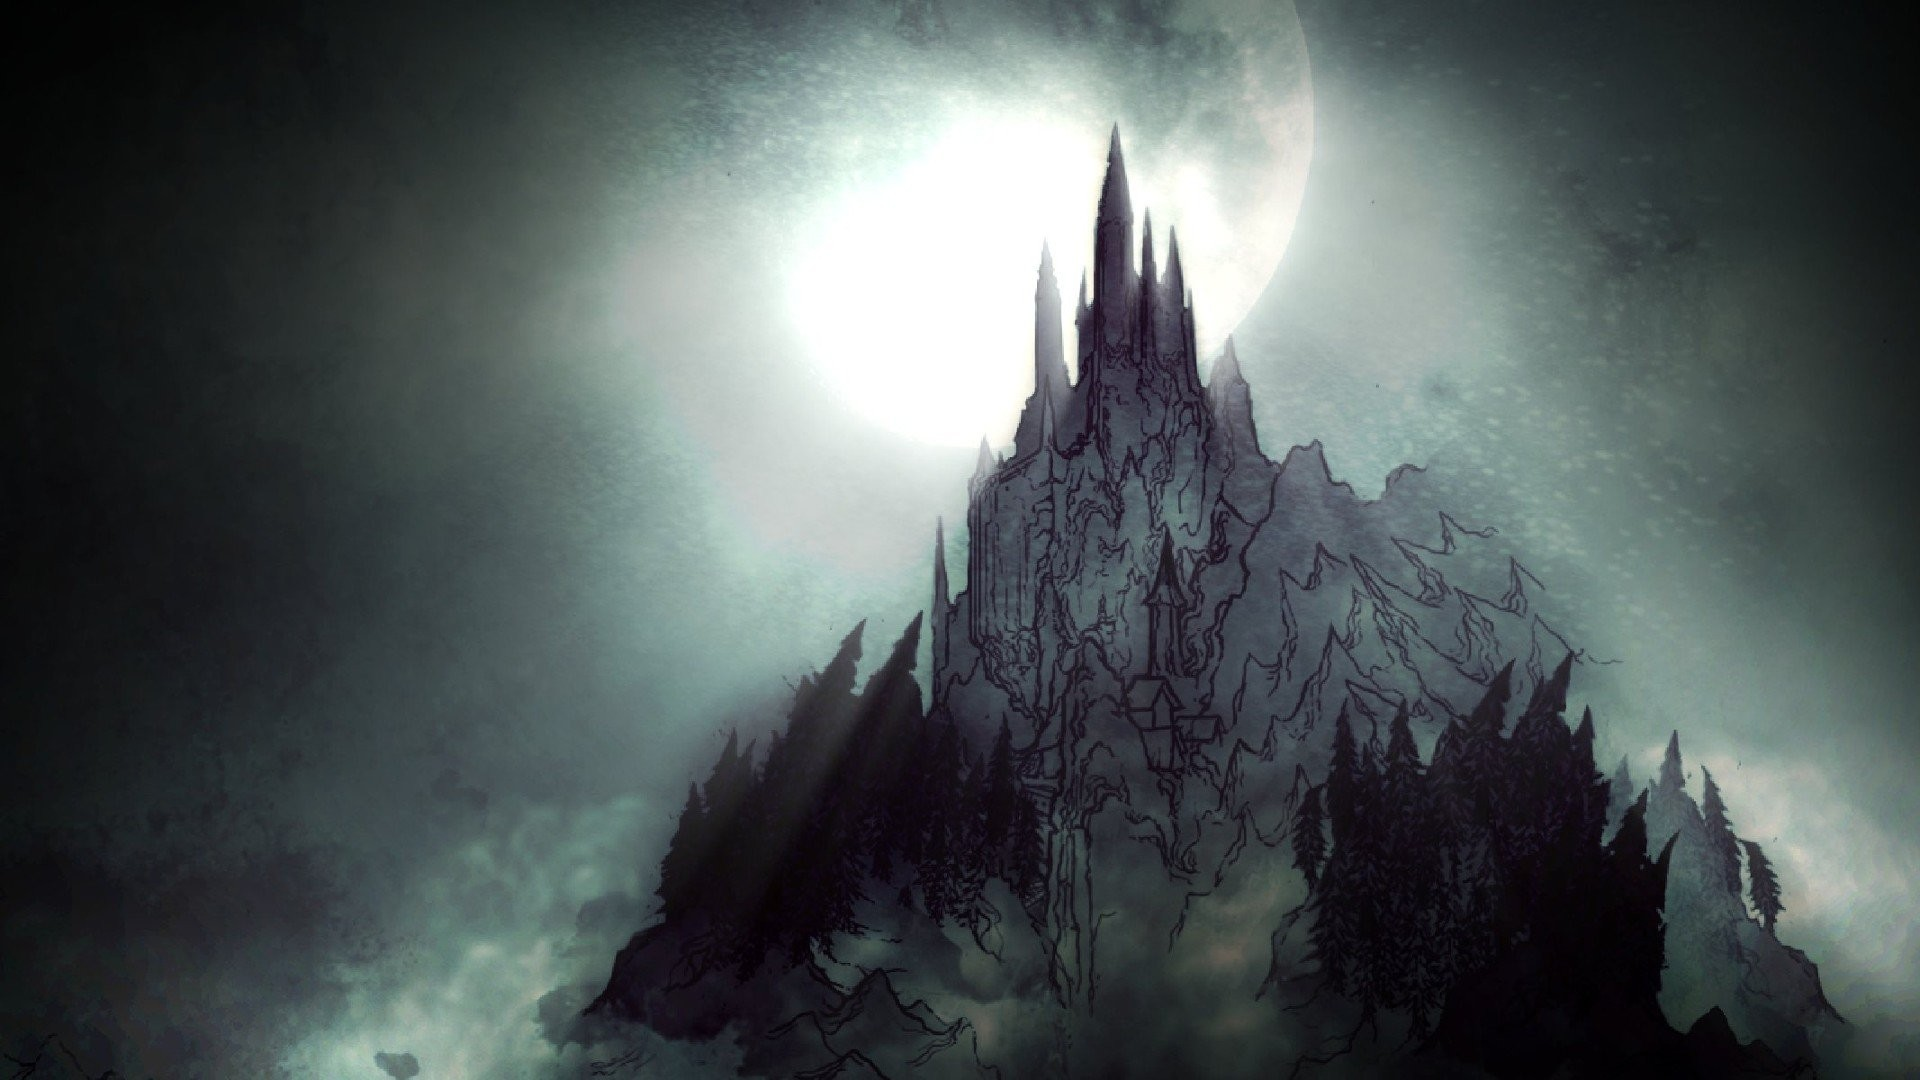 1920x1080 adventure dracula, dark, fantasy, action, backgrounds, castle, widescreen,  technology wallpapers,castlevania, hd, platform, vampire,desktop wallpapers,  ...